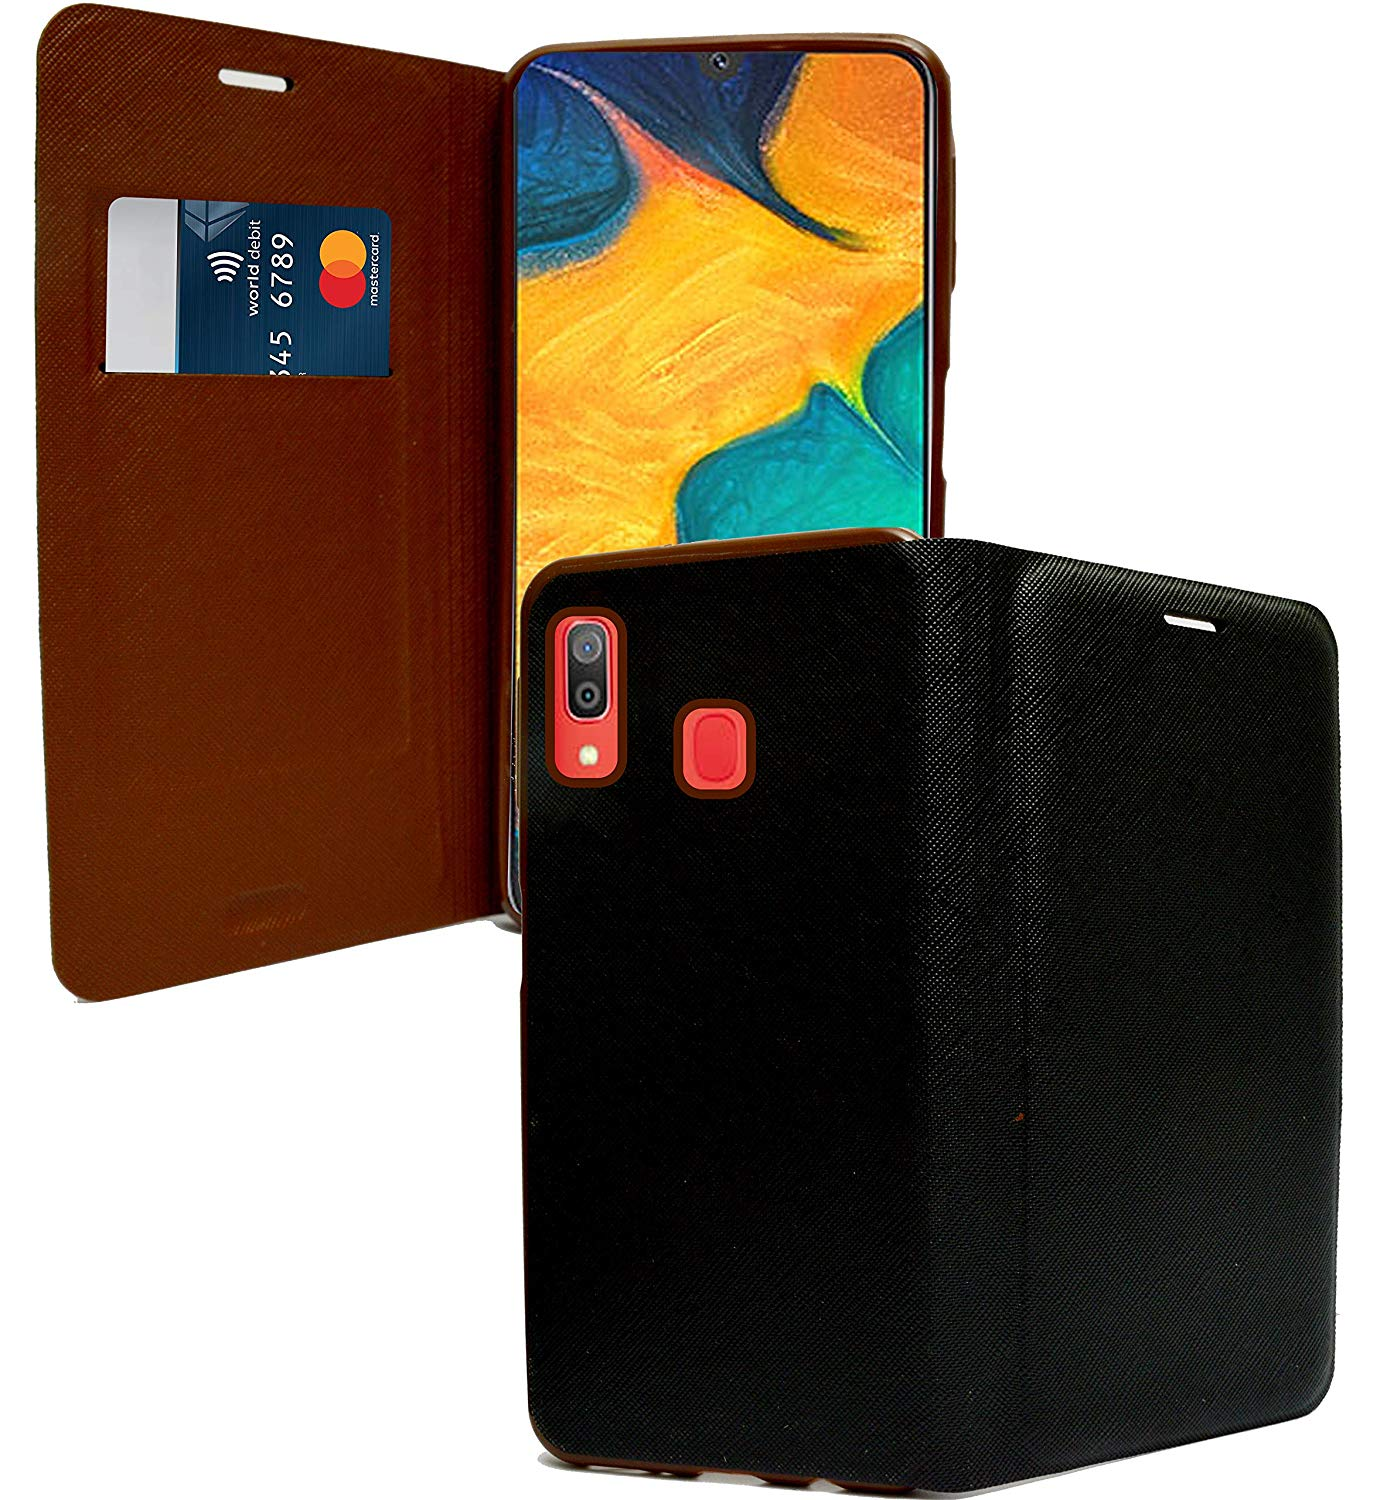 Samsung Galaxy A30 Textured Flip Cover Case with Card Holder - Black